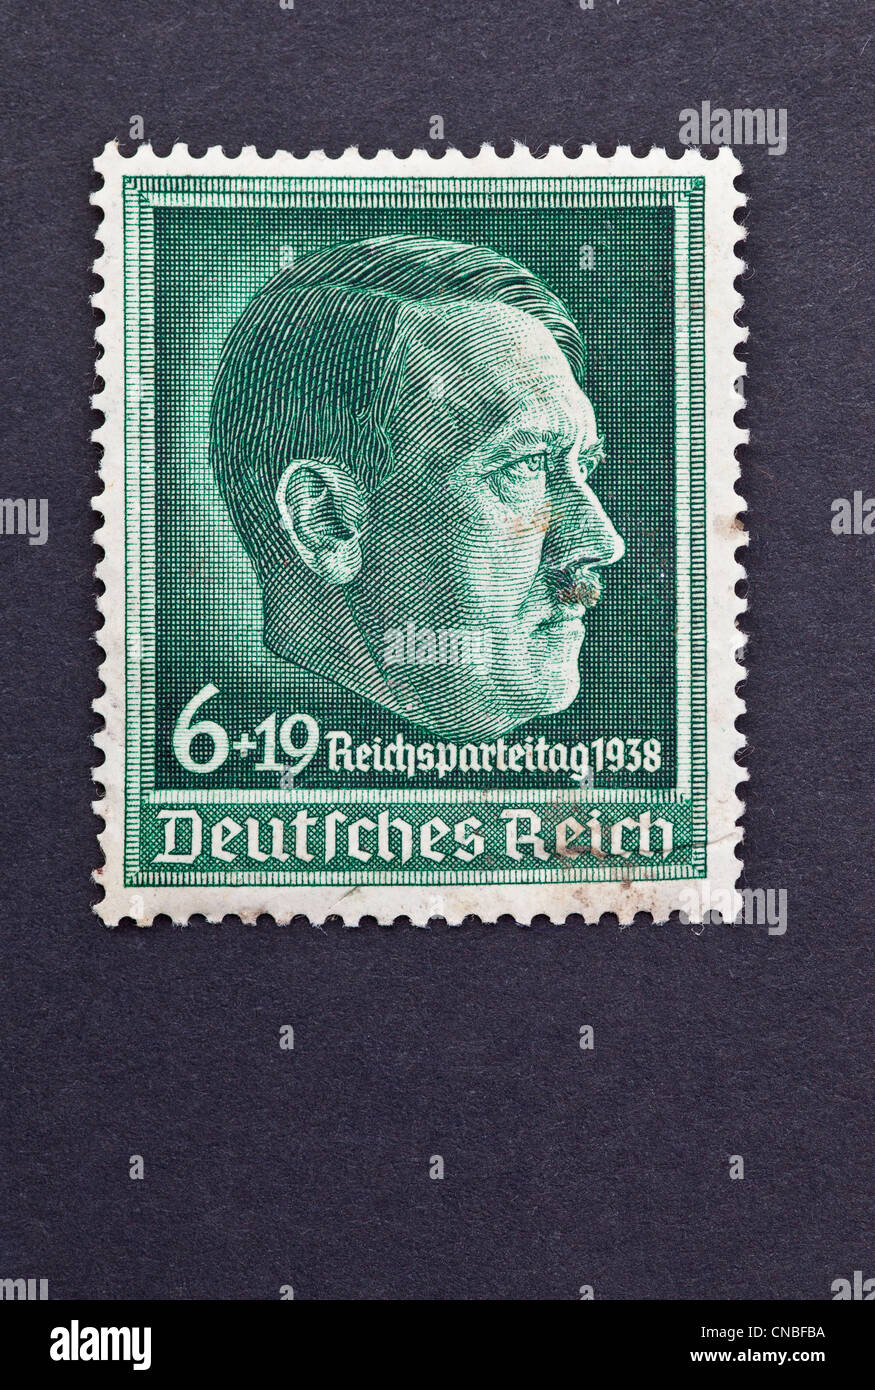 German world war two stamp with Hitlers head profile - Stock Image